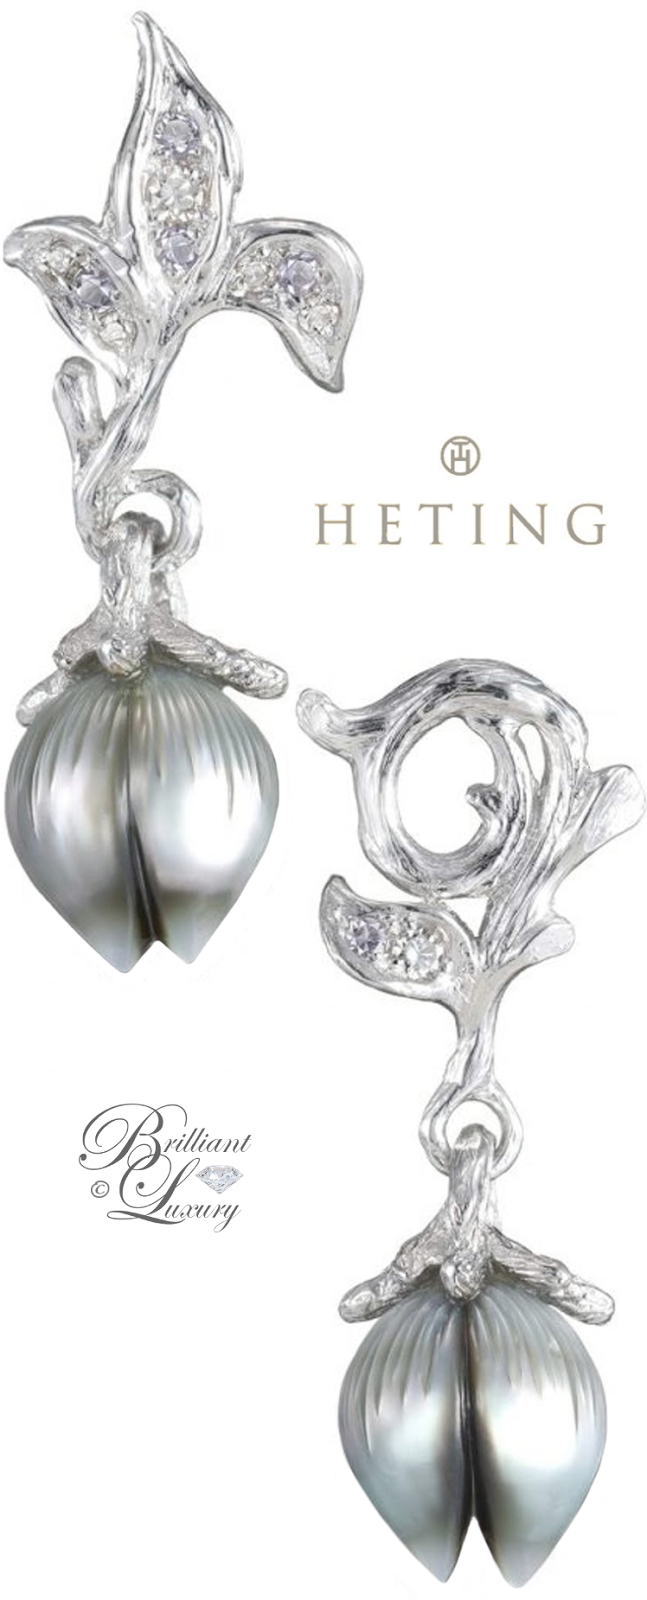 Brilliant Luxury ♦ Heting Bellflower Earrings